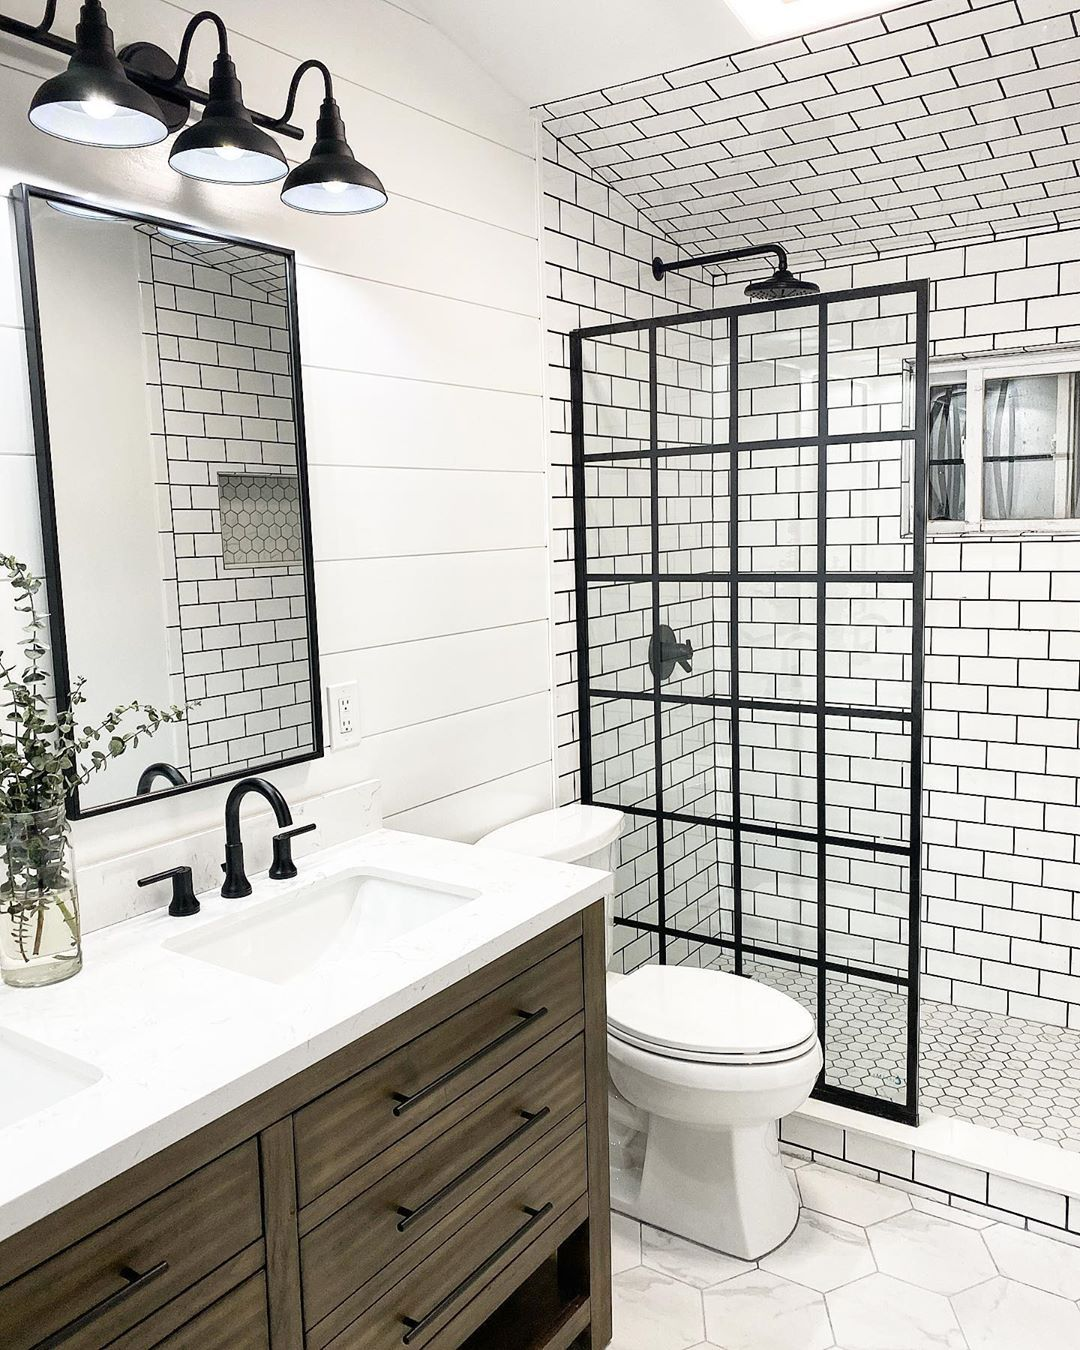 Dreamline S French Linea Toulon Shower Screen In A Modern Industrial Farmhouse Bathroom Design In 2020 Small Bathroom Makeover Shower Doors Amazing Bathrooms